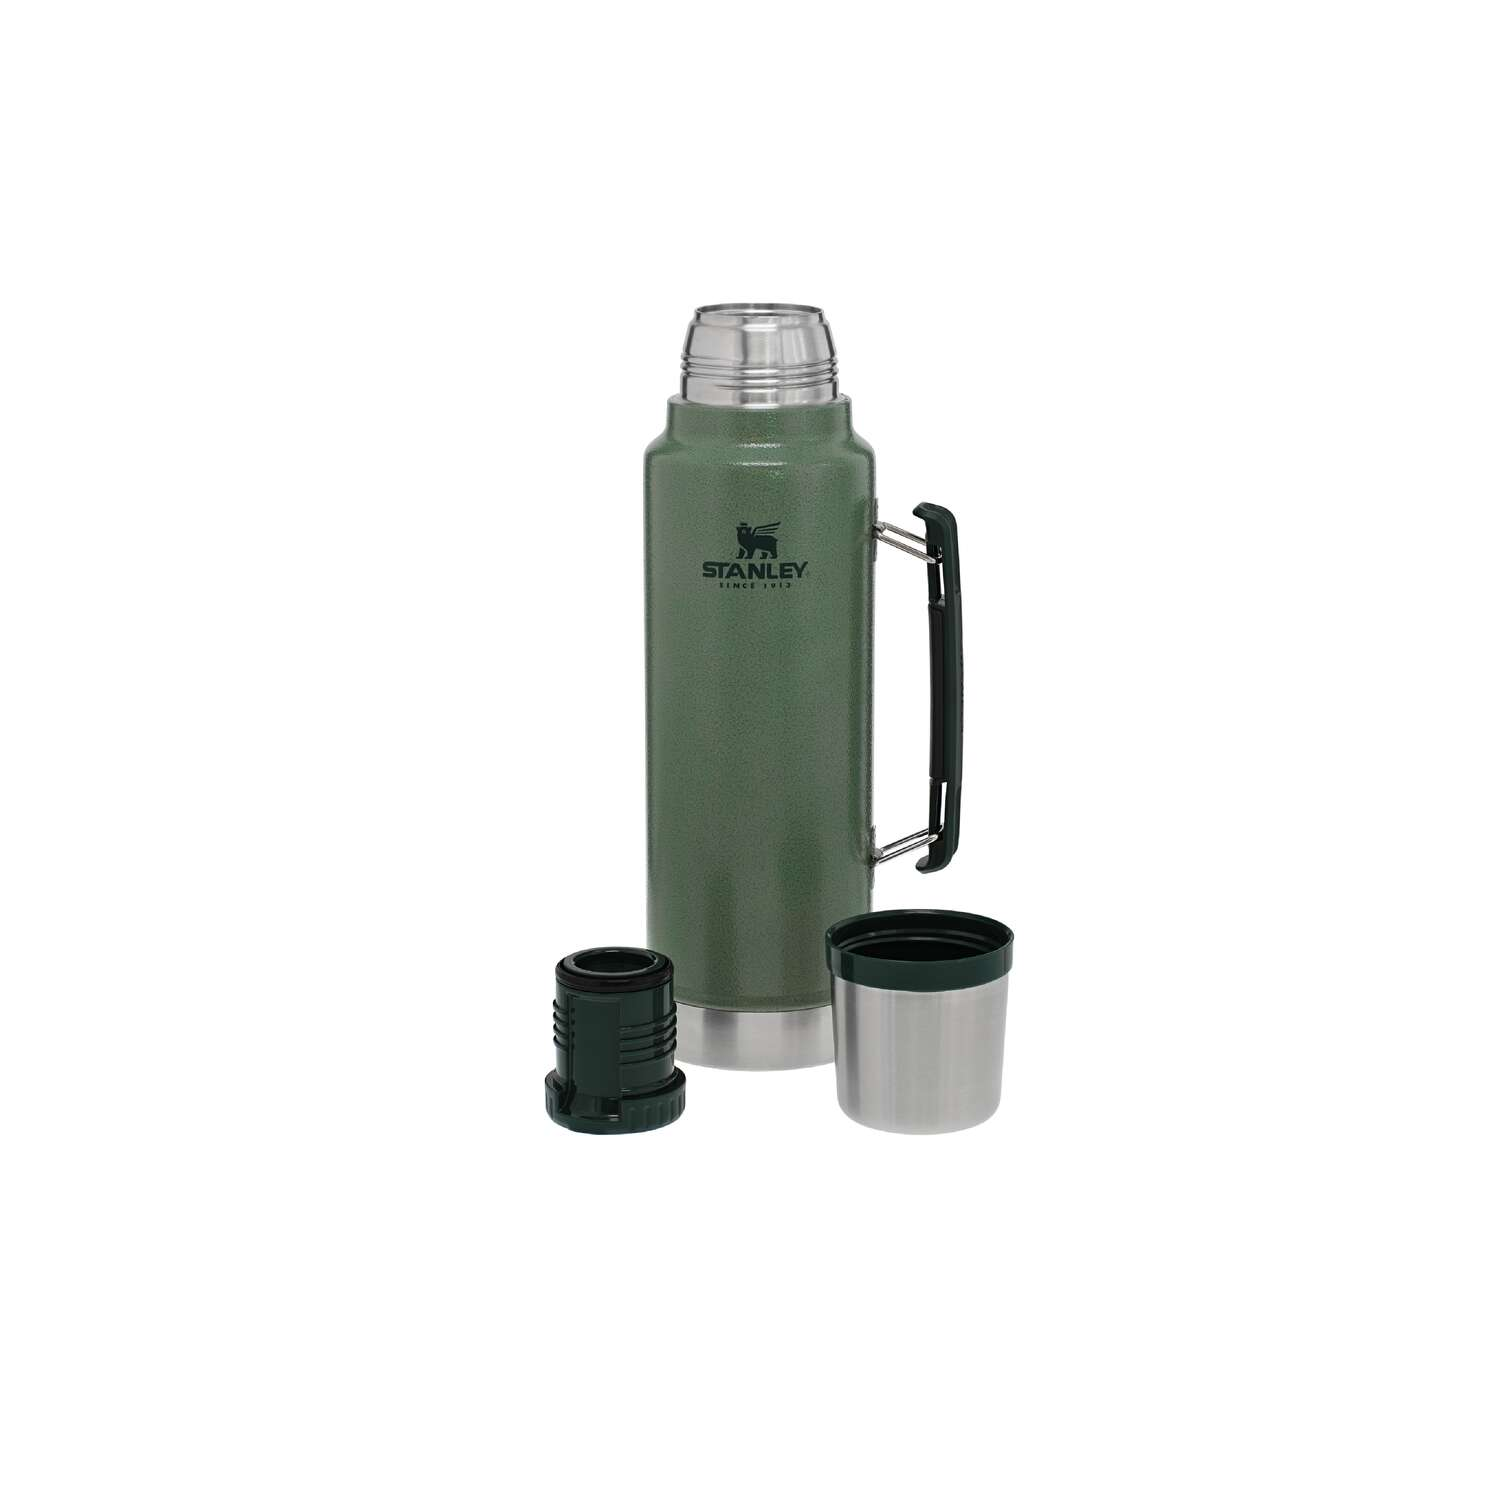 Stanley  1.5 qt. Classic  Vacuum Insulated Bottle  Hammertone Green